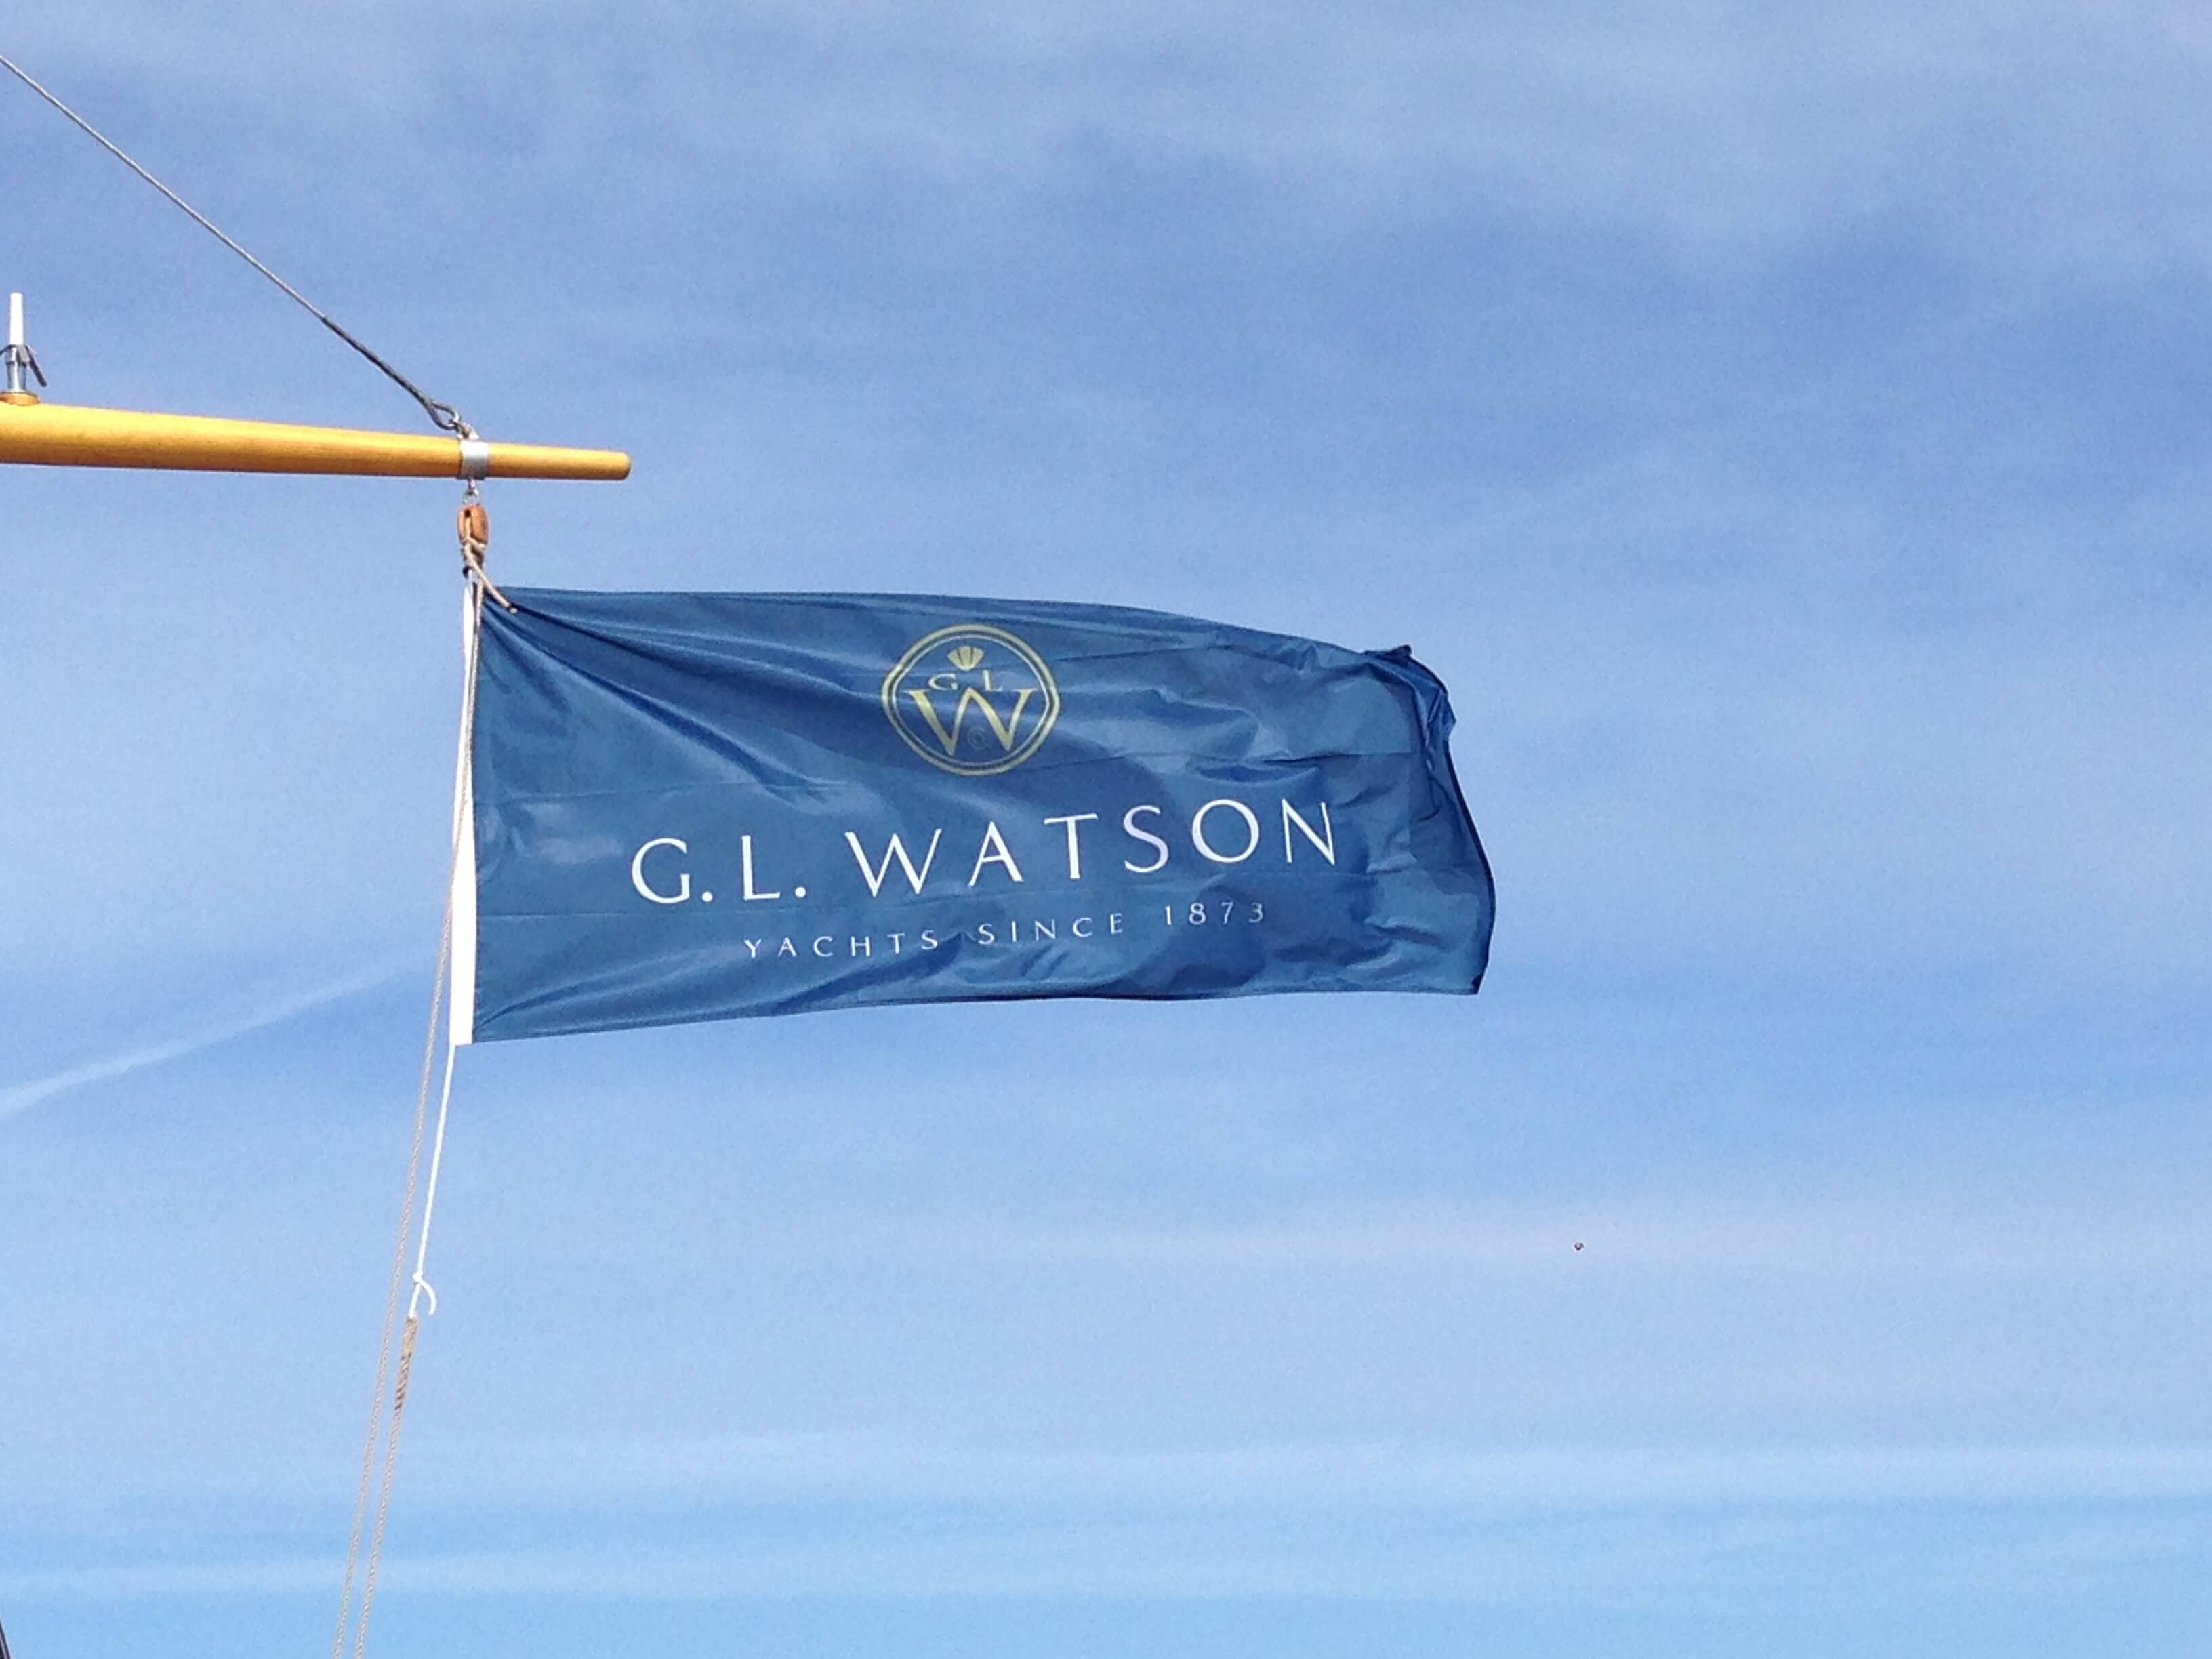 G.L. Watson Flag flies on a yacht where we provided Owner Representation.